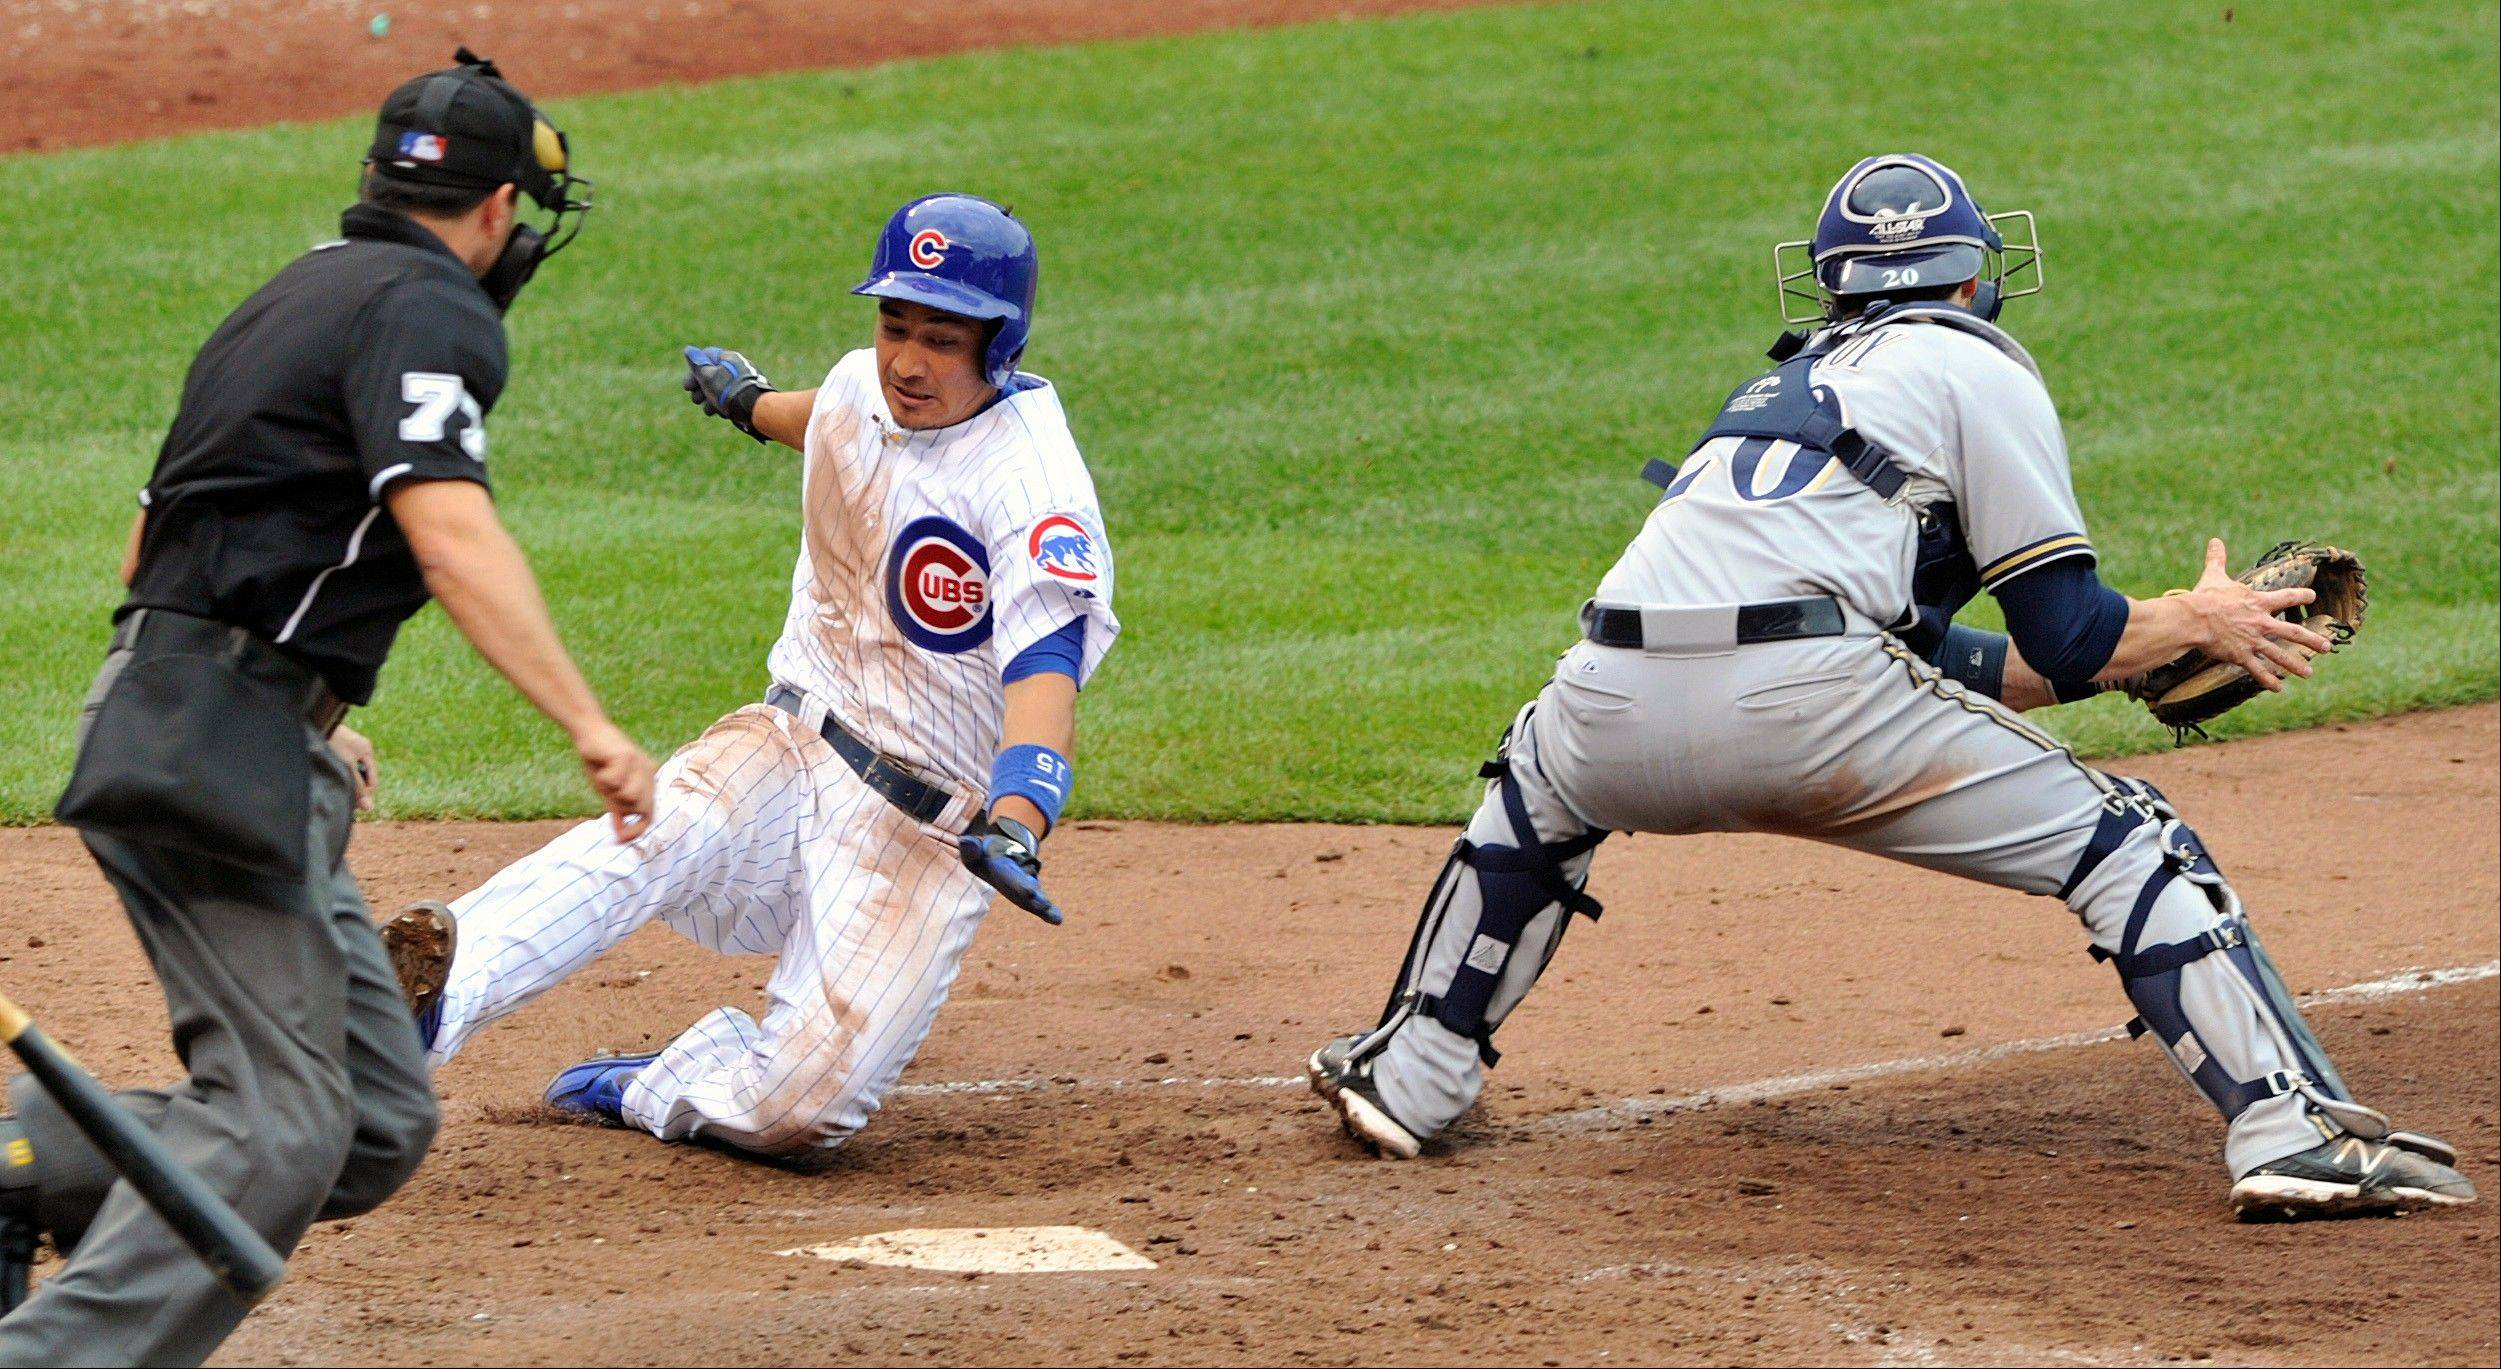 Chicago Cubs� Darwin Barney left, avoids the tag of Milwaukee Brewers catcher Jonathan Lucroy to score on an RBI single by Carlos Villanueva during the fifth inning of a baseball game Tuesday in Chicago.